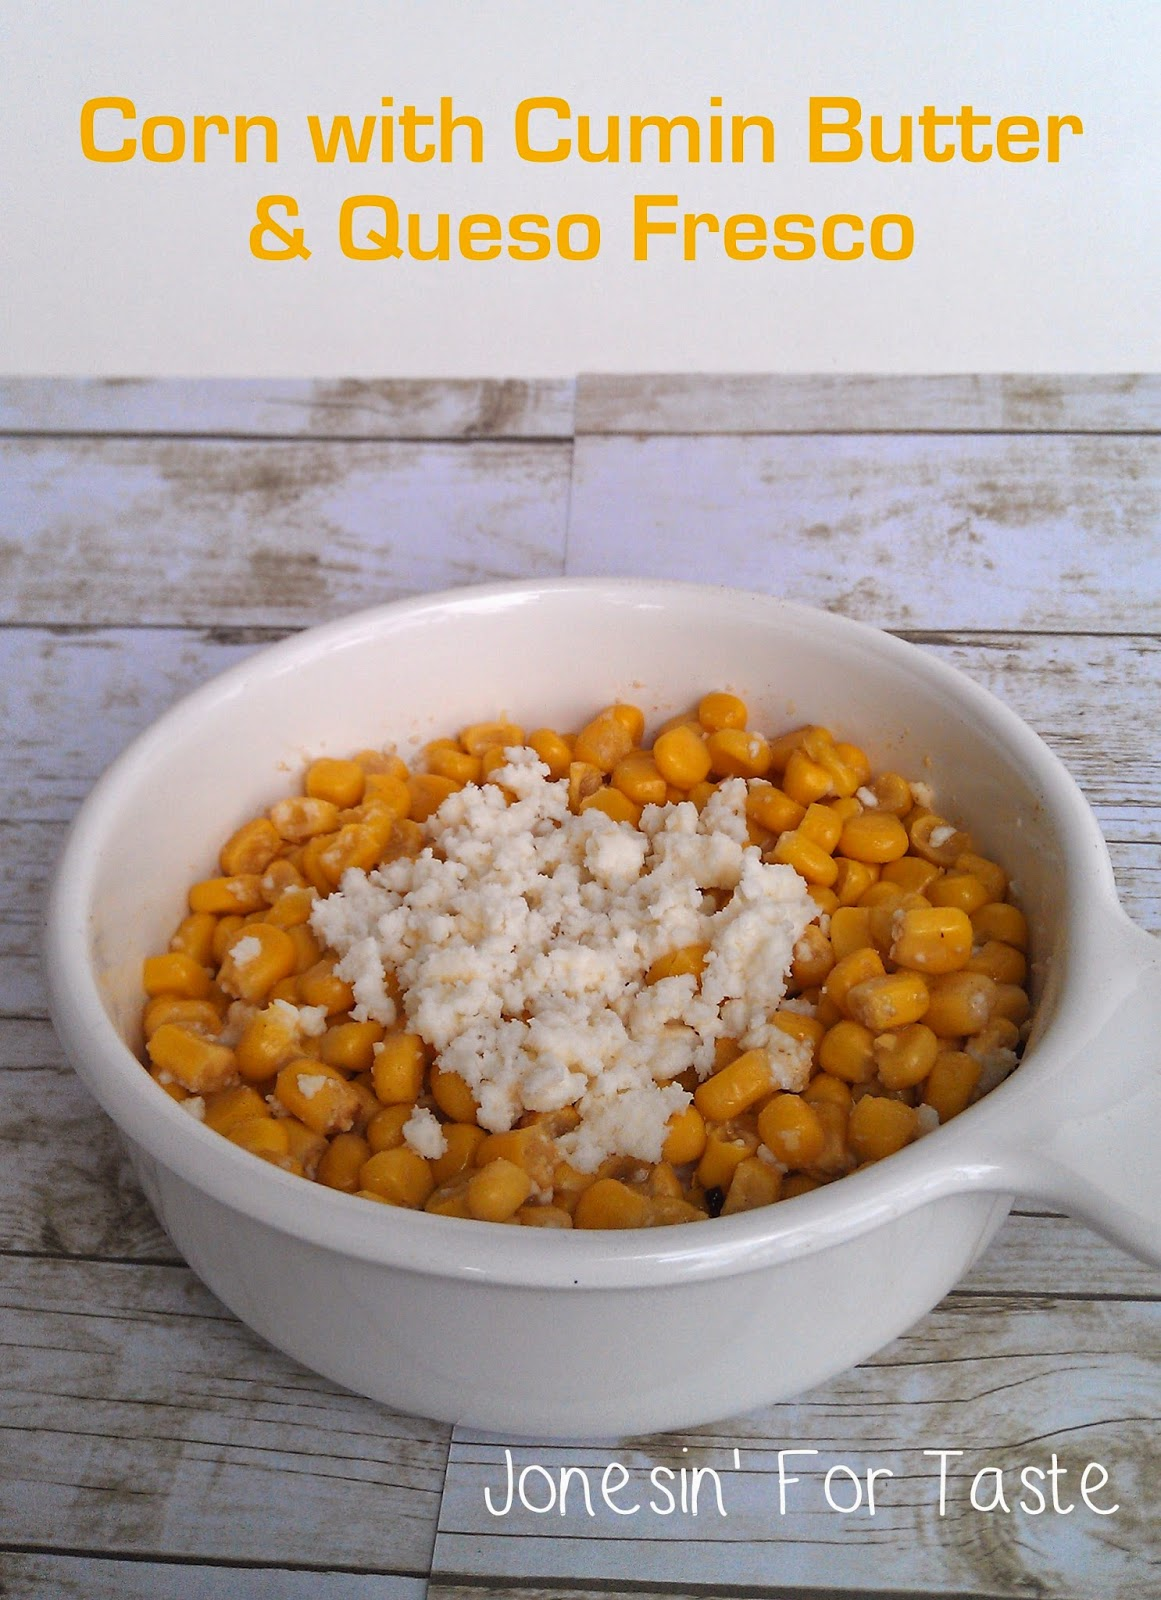 Corn with cumin butter and queso fresco